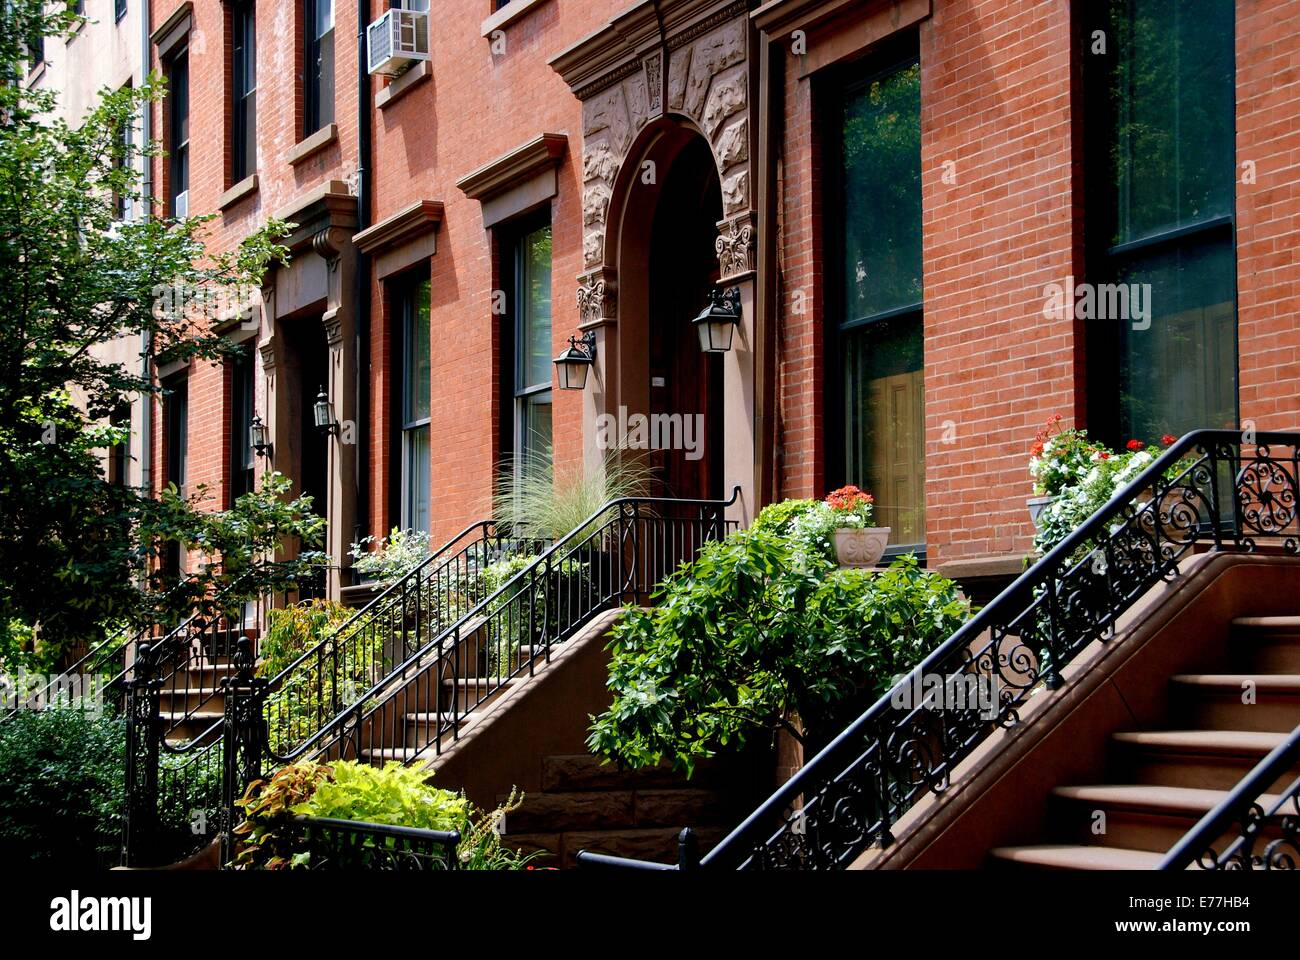 Brooklyn new york elegant brick town houses with stoops for Buy house in brooklyn